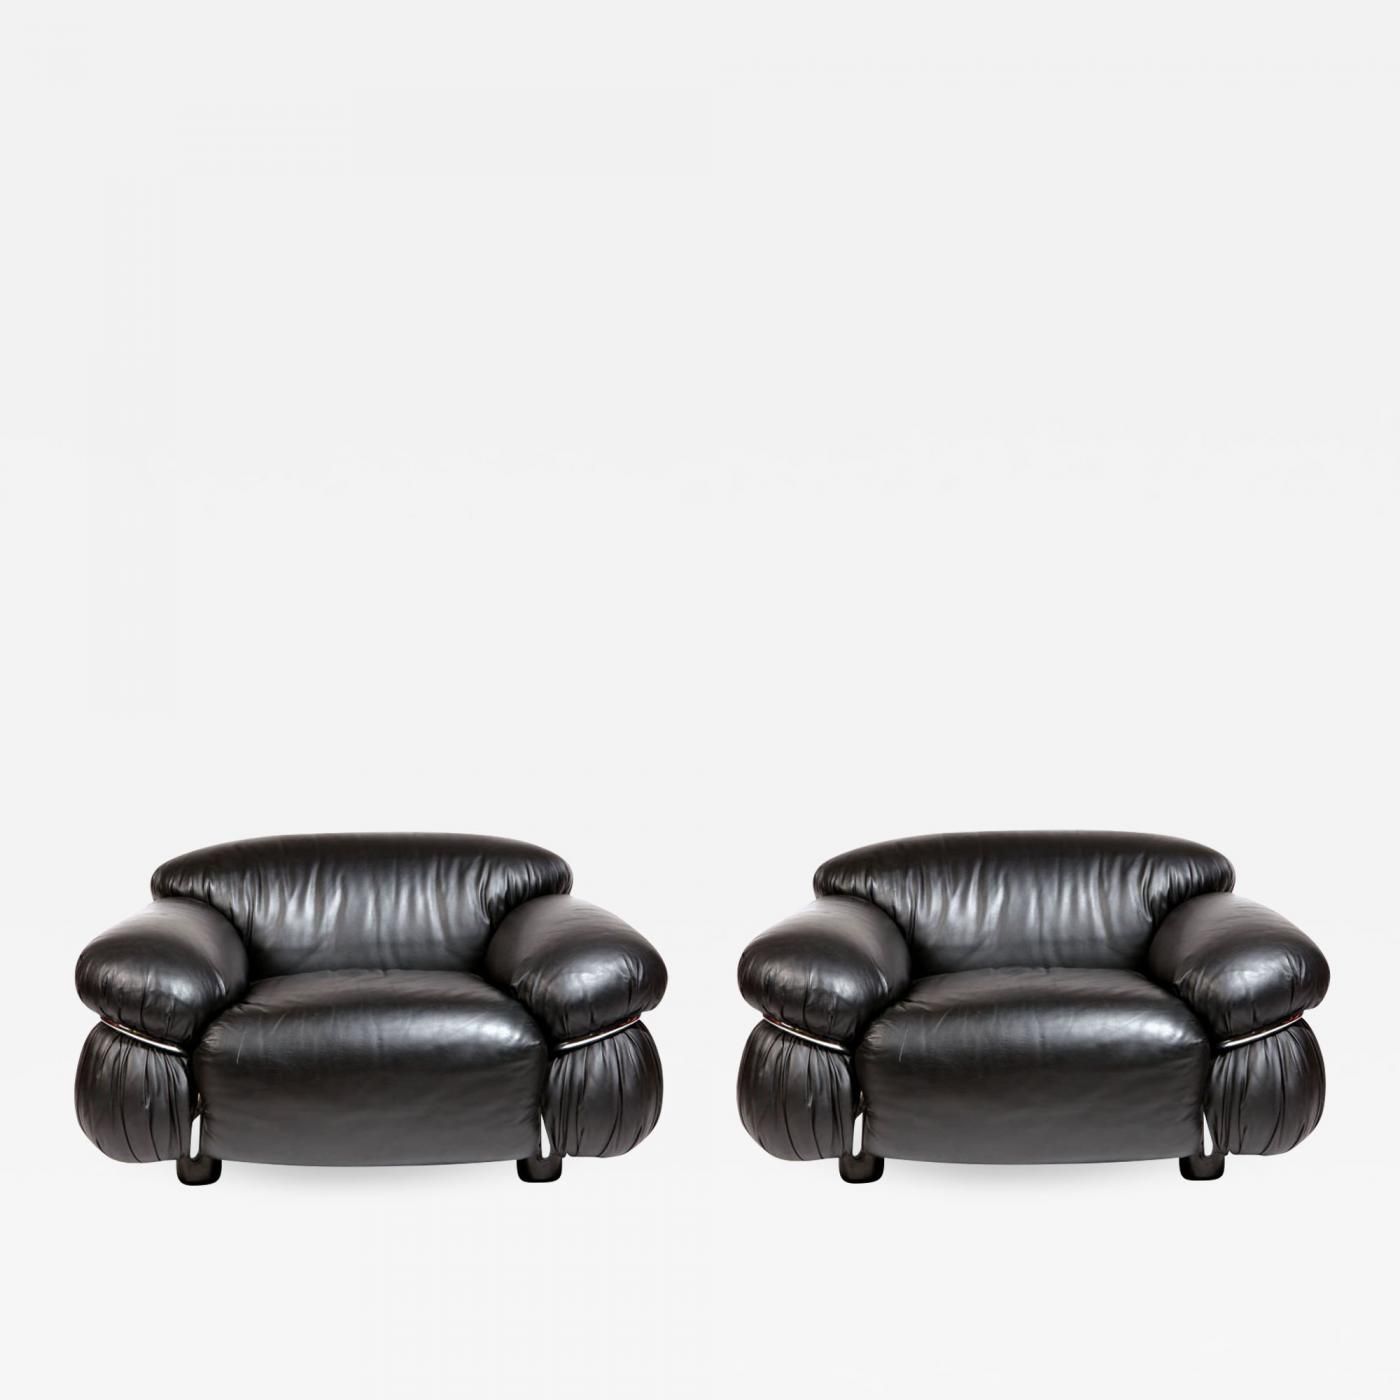 Black Leather Lounge Chair Gianfranco Frattini Pair Of Black Leather Lounge Chair By Gianfranco Frattini